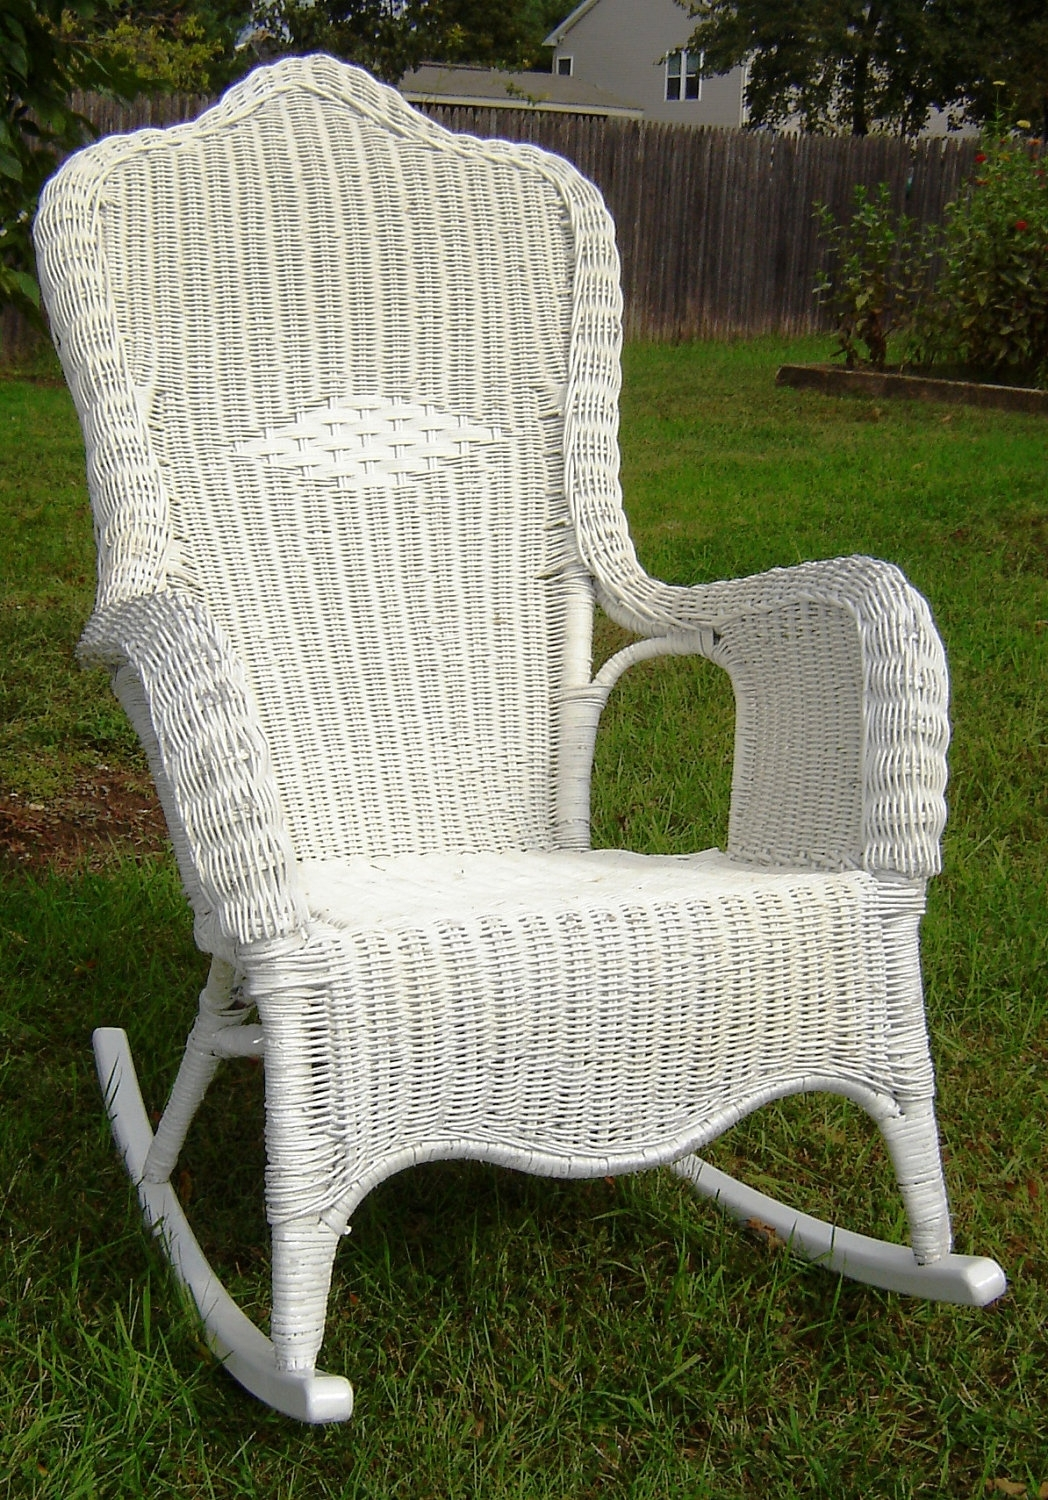 Dinning Room Furniture Wicker Chair Armrest Covers White Chairs Regarding 2019 White Wicker Rocking Chairs (Gallery 5 of 20)